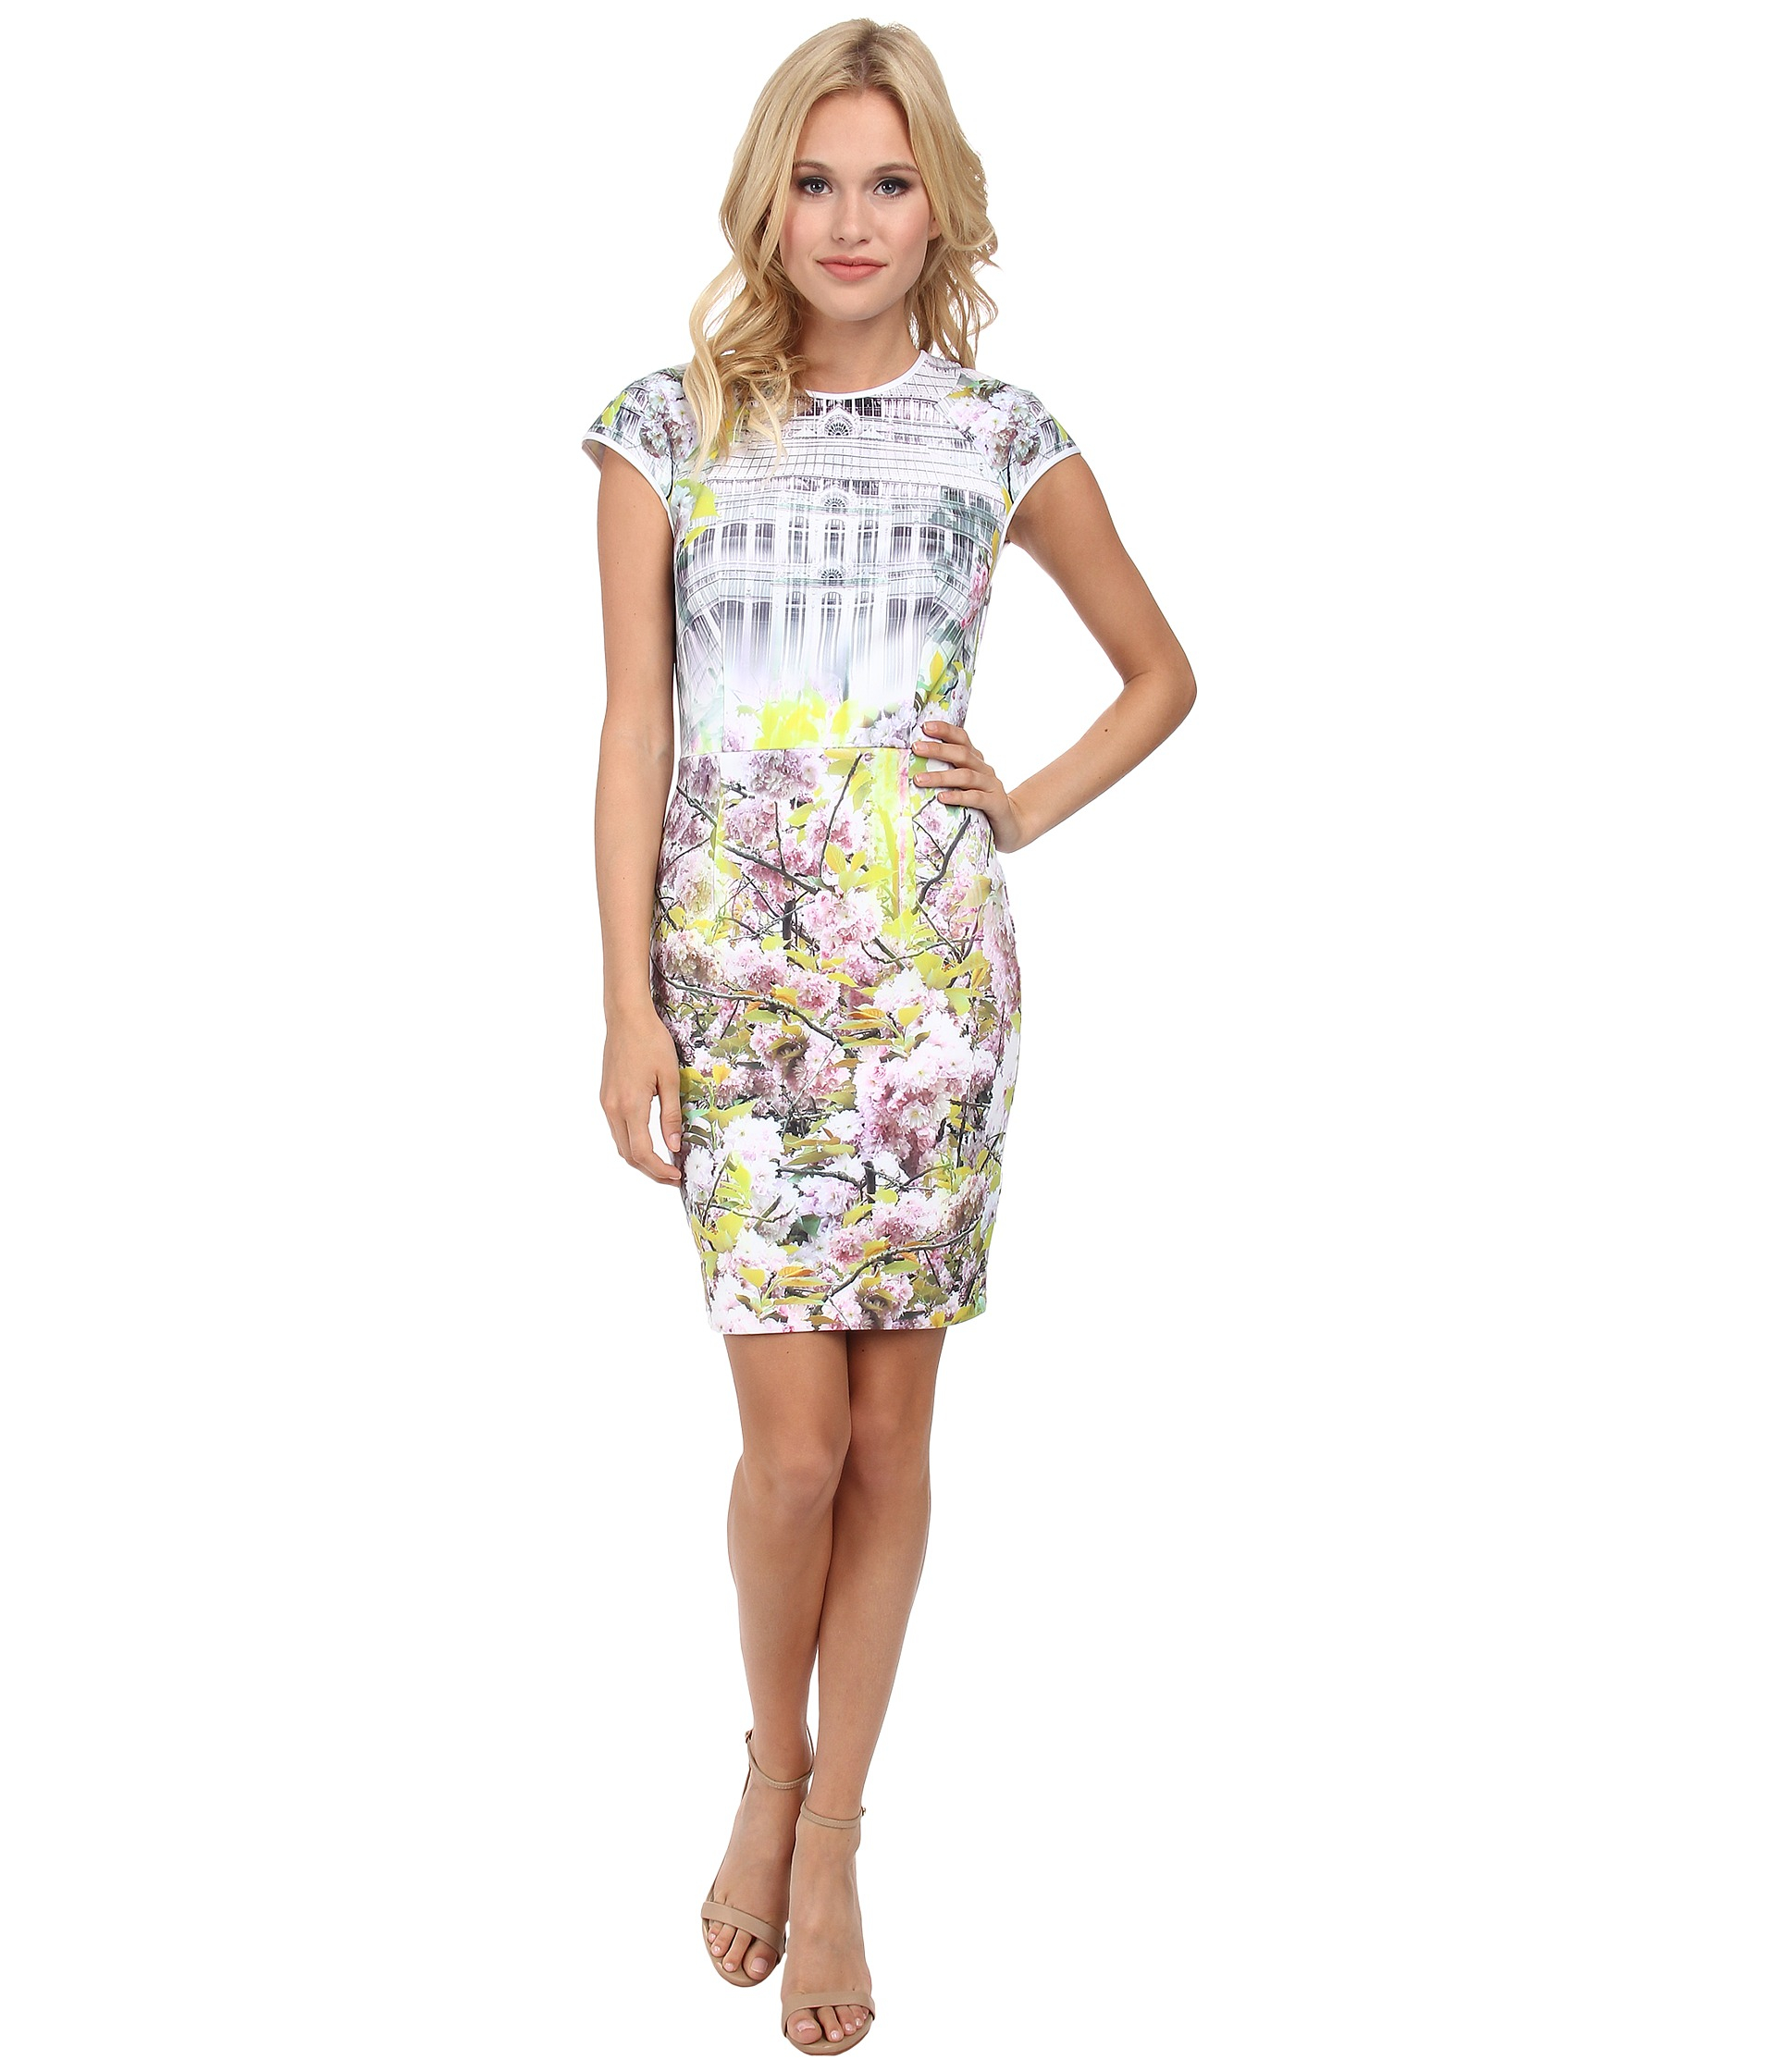 ac68709c8d8 Lyst - Ted Baker Pancha Window Blossom Fitted Dress in Purple